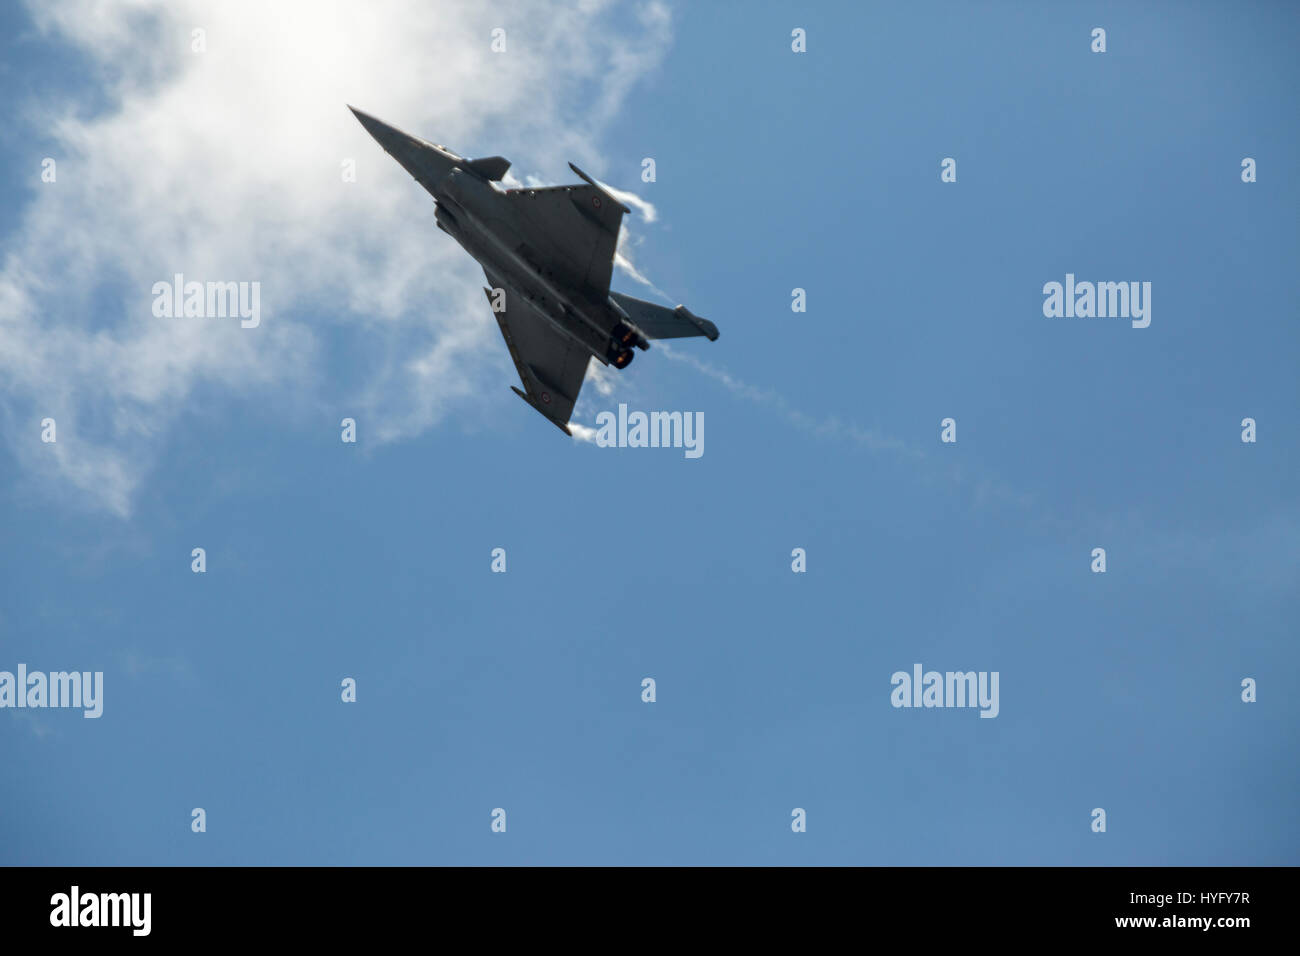 A Dassault Rafale Multirole fighter aircraft flies at the Langkawi International Maritime and Aerospace (LIMA) Exhibition - Stock Image